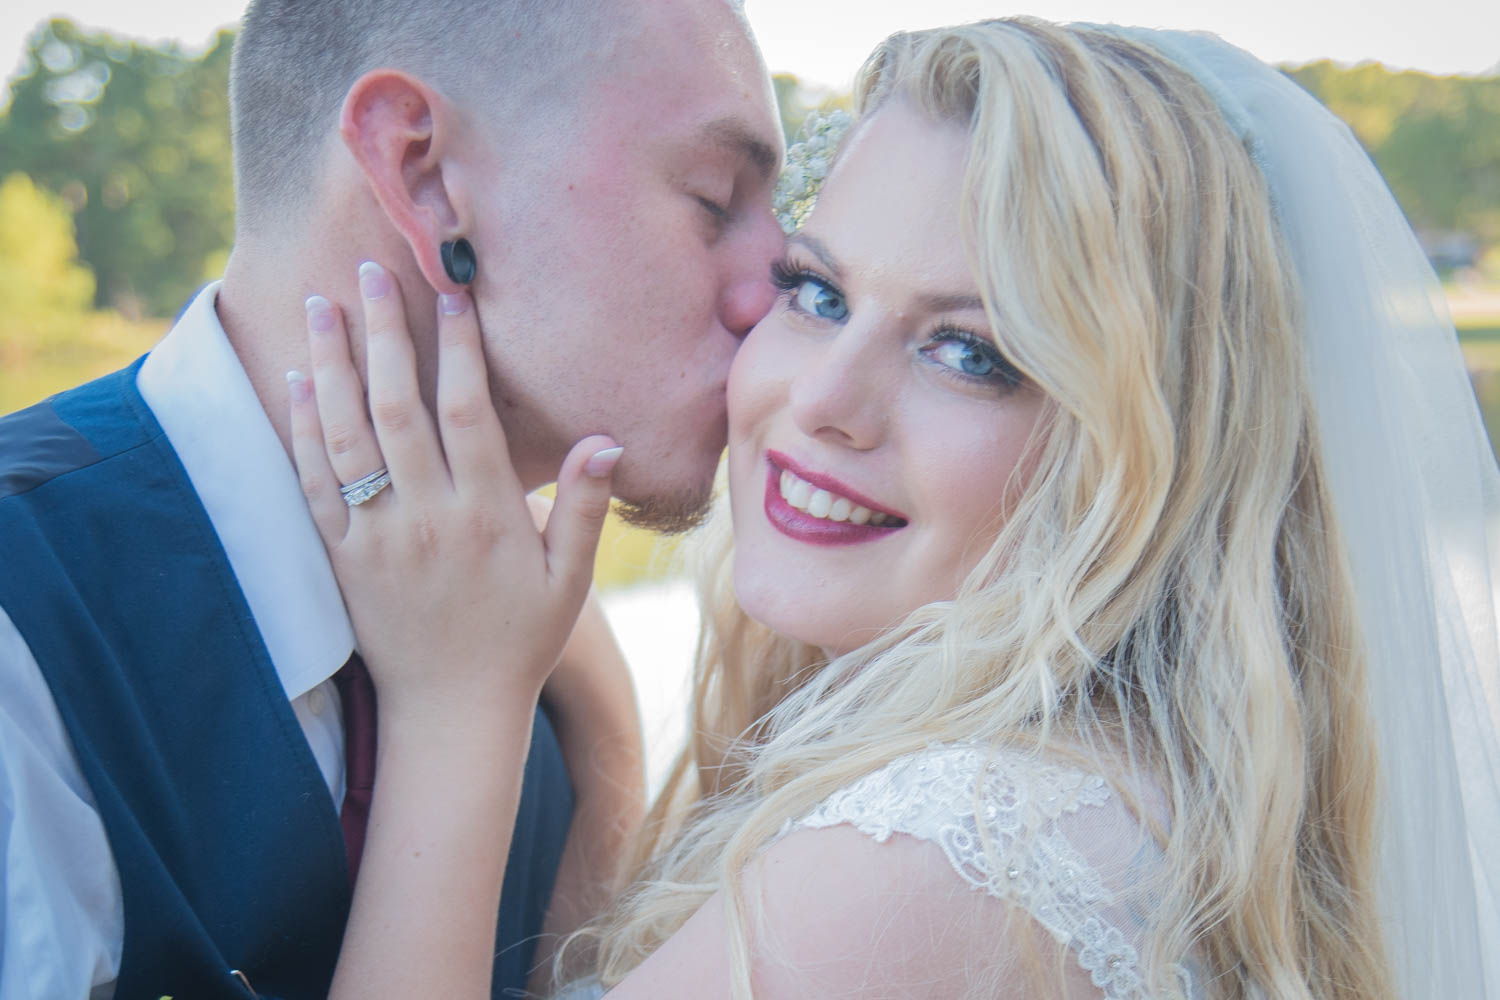 Pine_Lake_Ranch_Wedding_Montgomery_Texas_Christi+Marshall